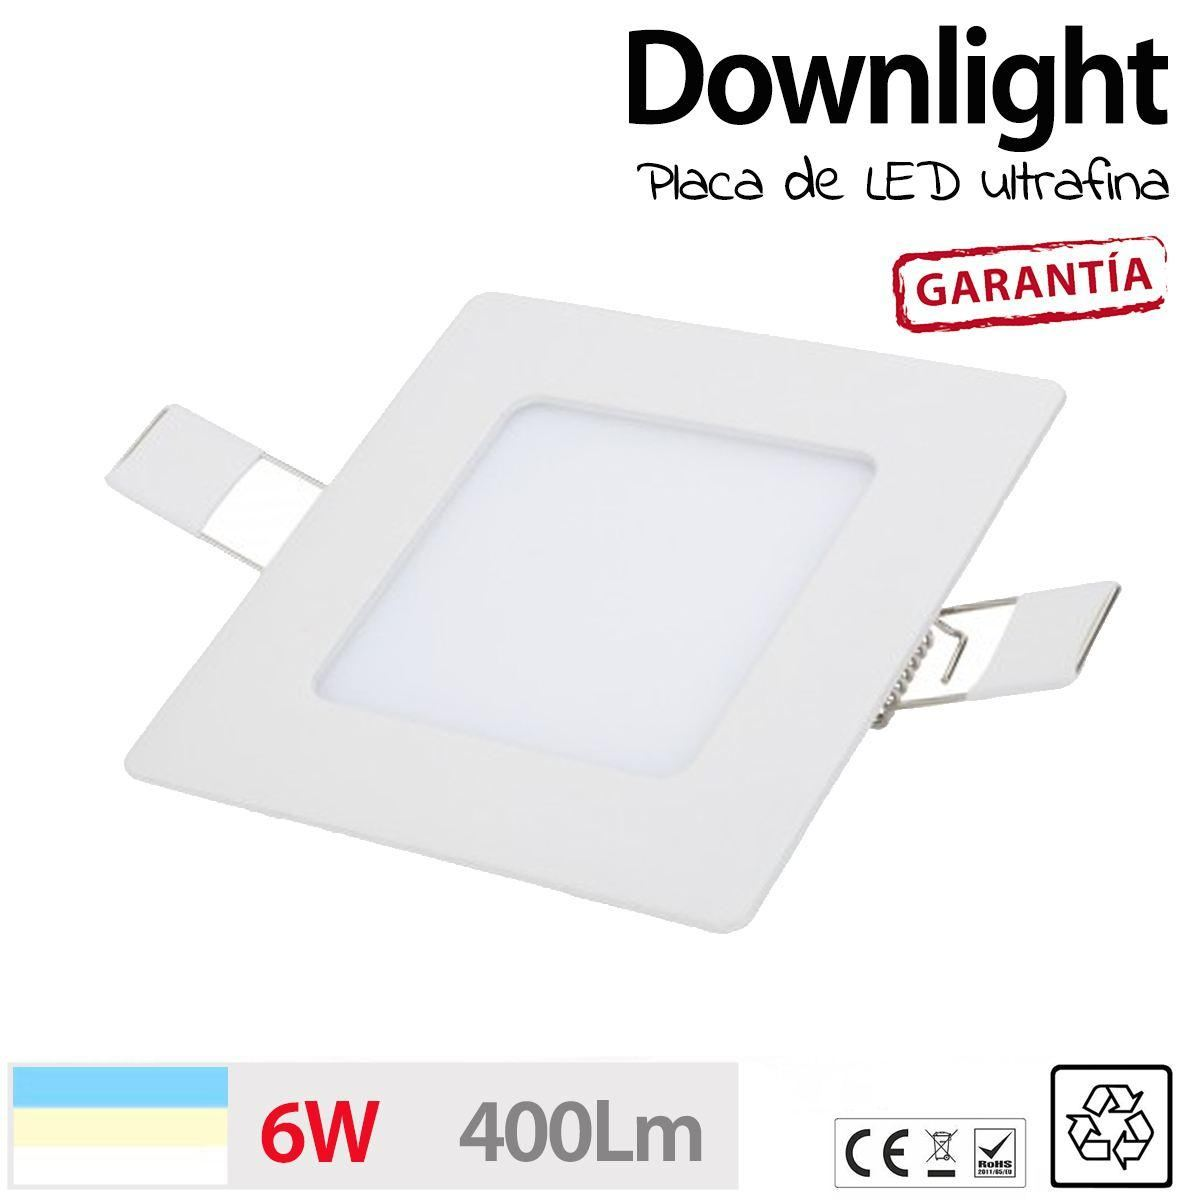 Downlight cuadrado 6w ultrafino placa led luz cocina - Downlight cocina led ...